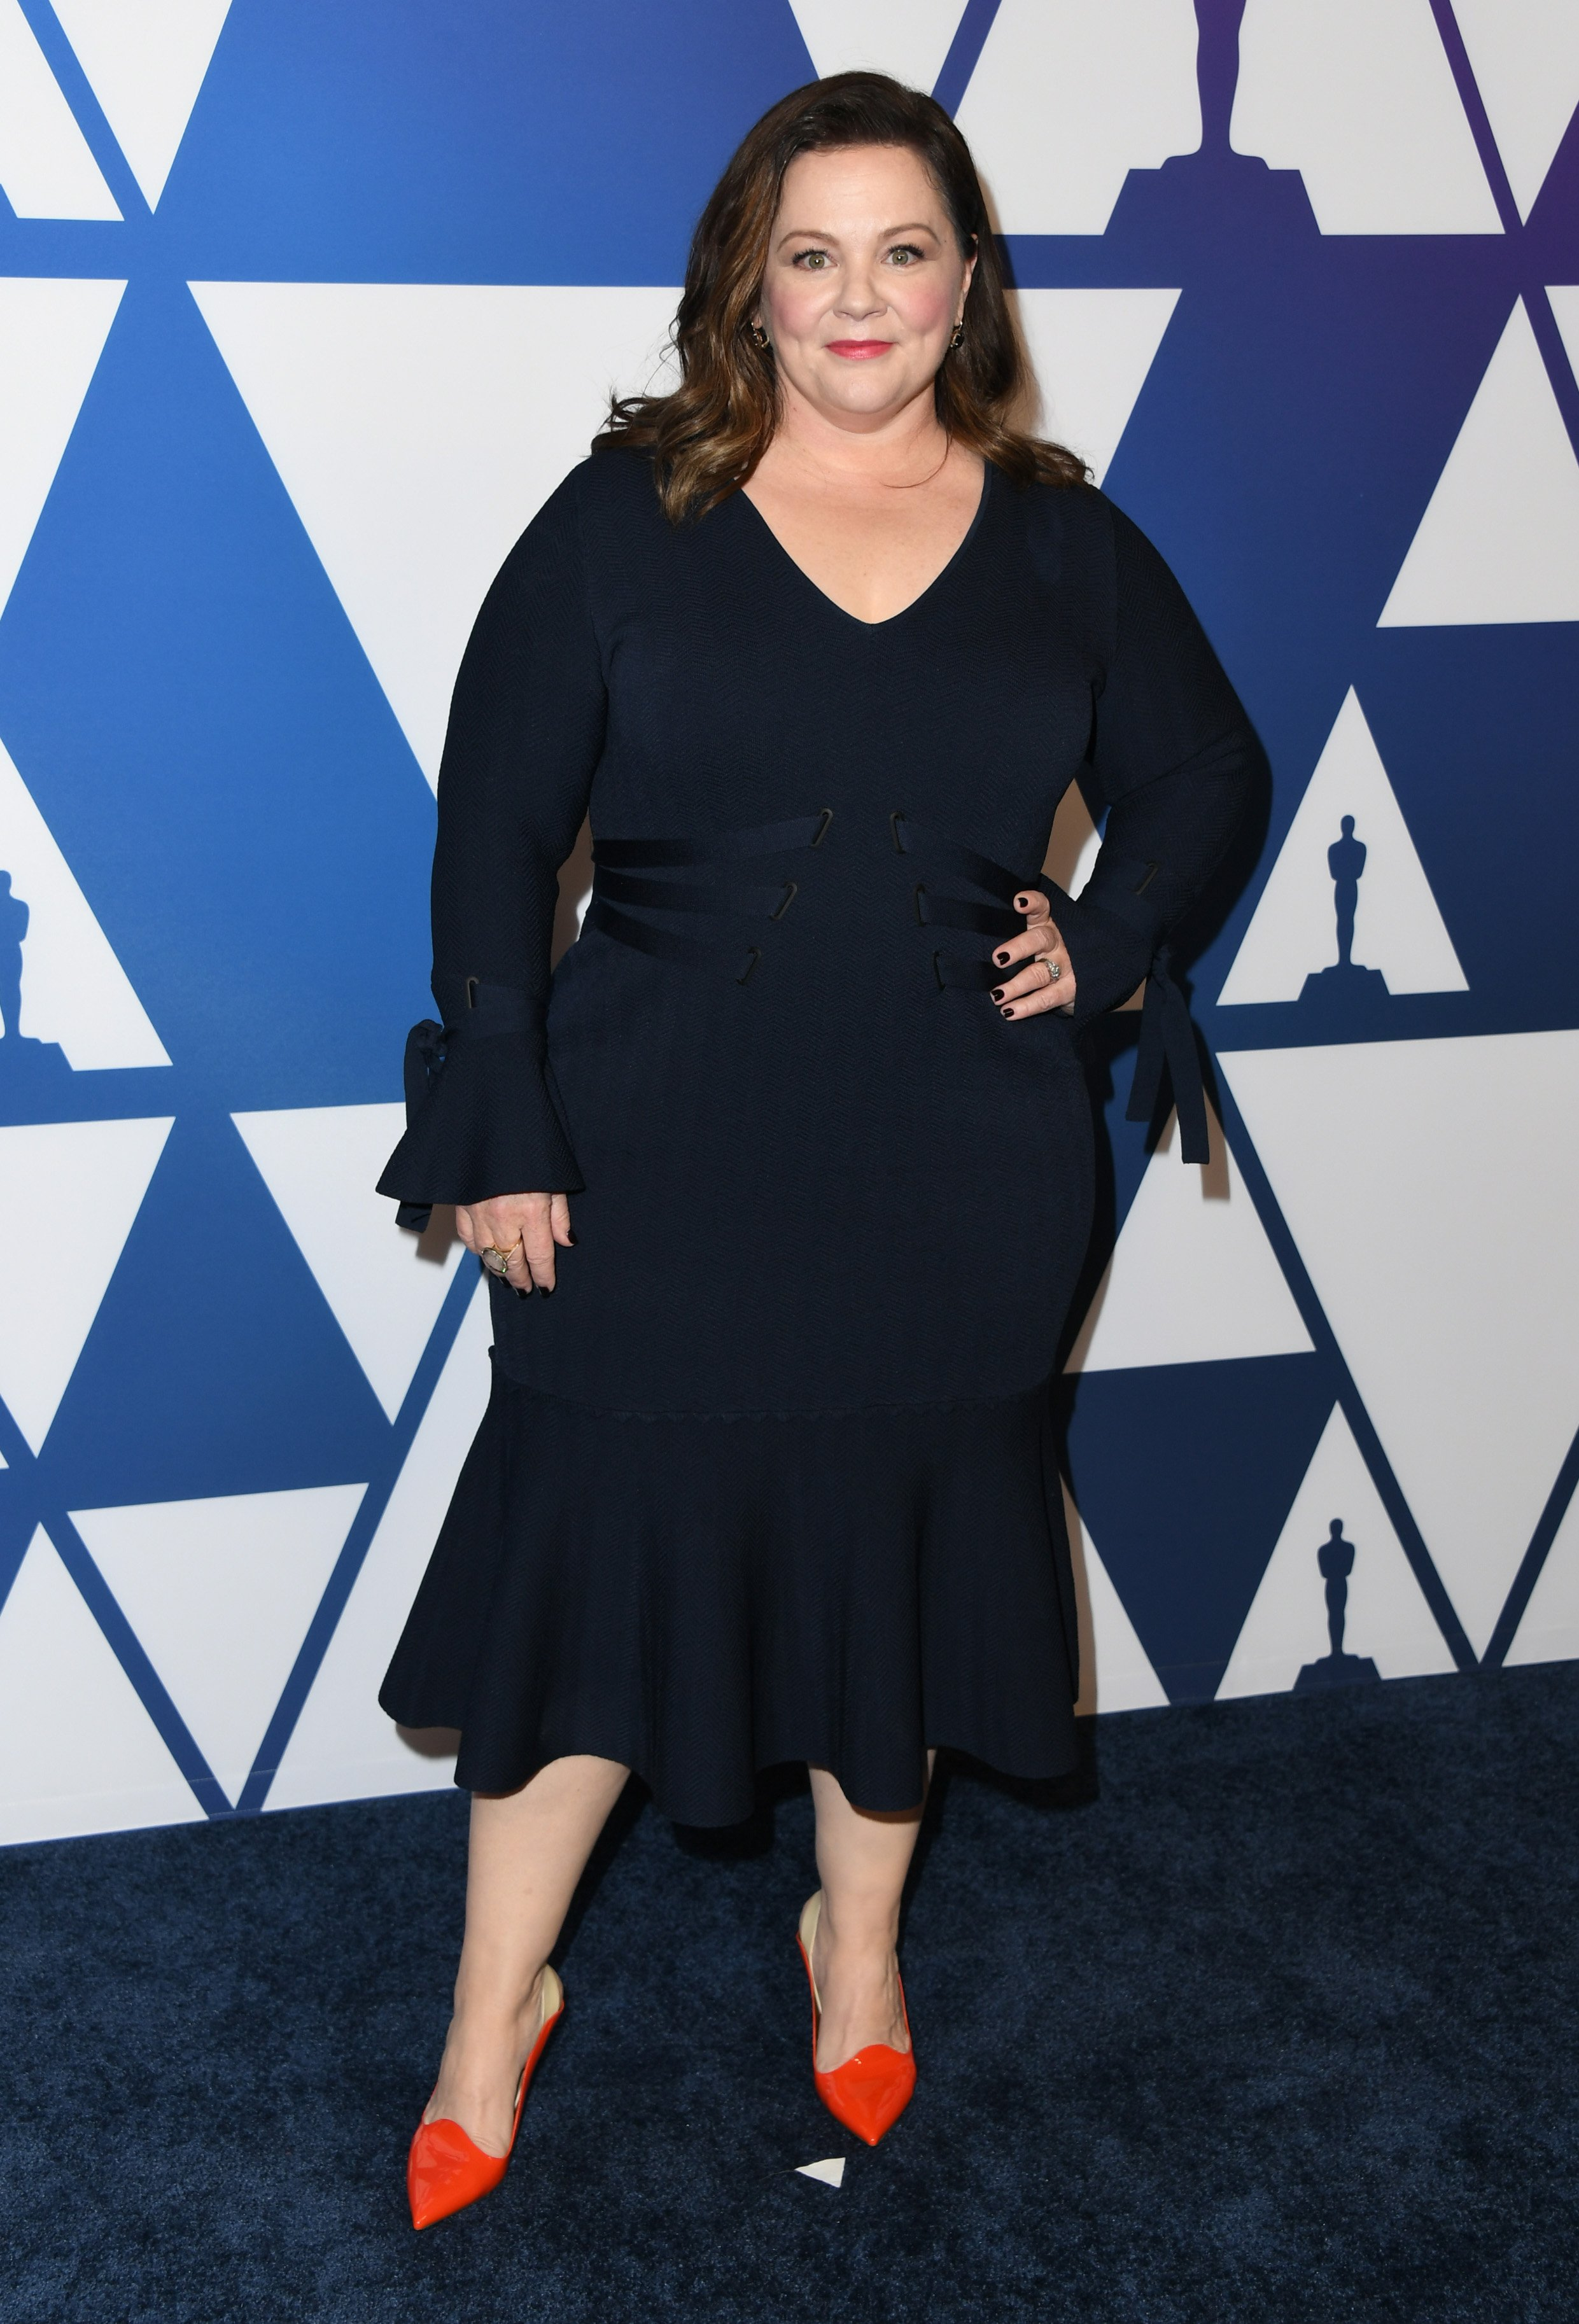 Melissa McCarthy at the BAFTA 2019 Awards | Photo: Getty Images